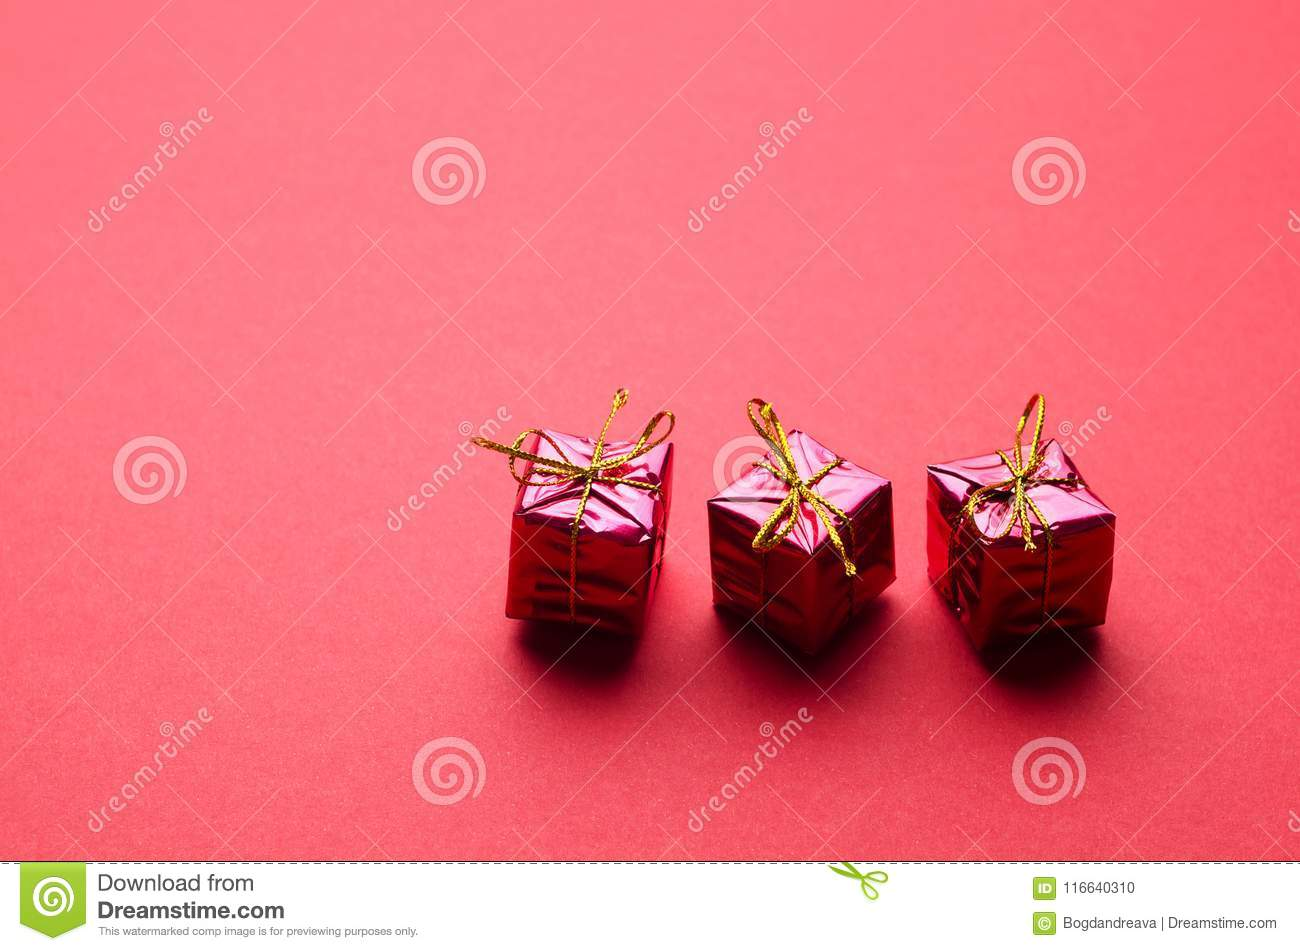 Small Christmas Gift Boxes stock photo. Image of present - 116640310